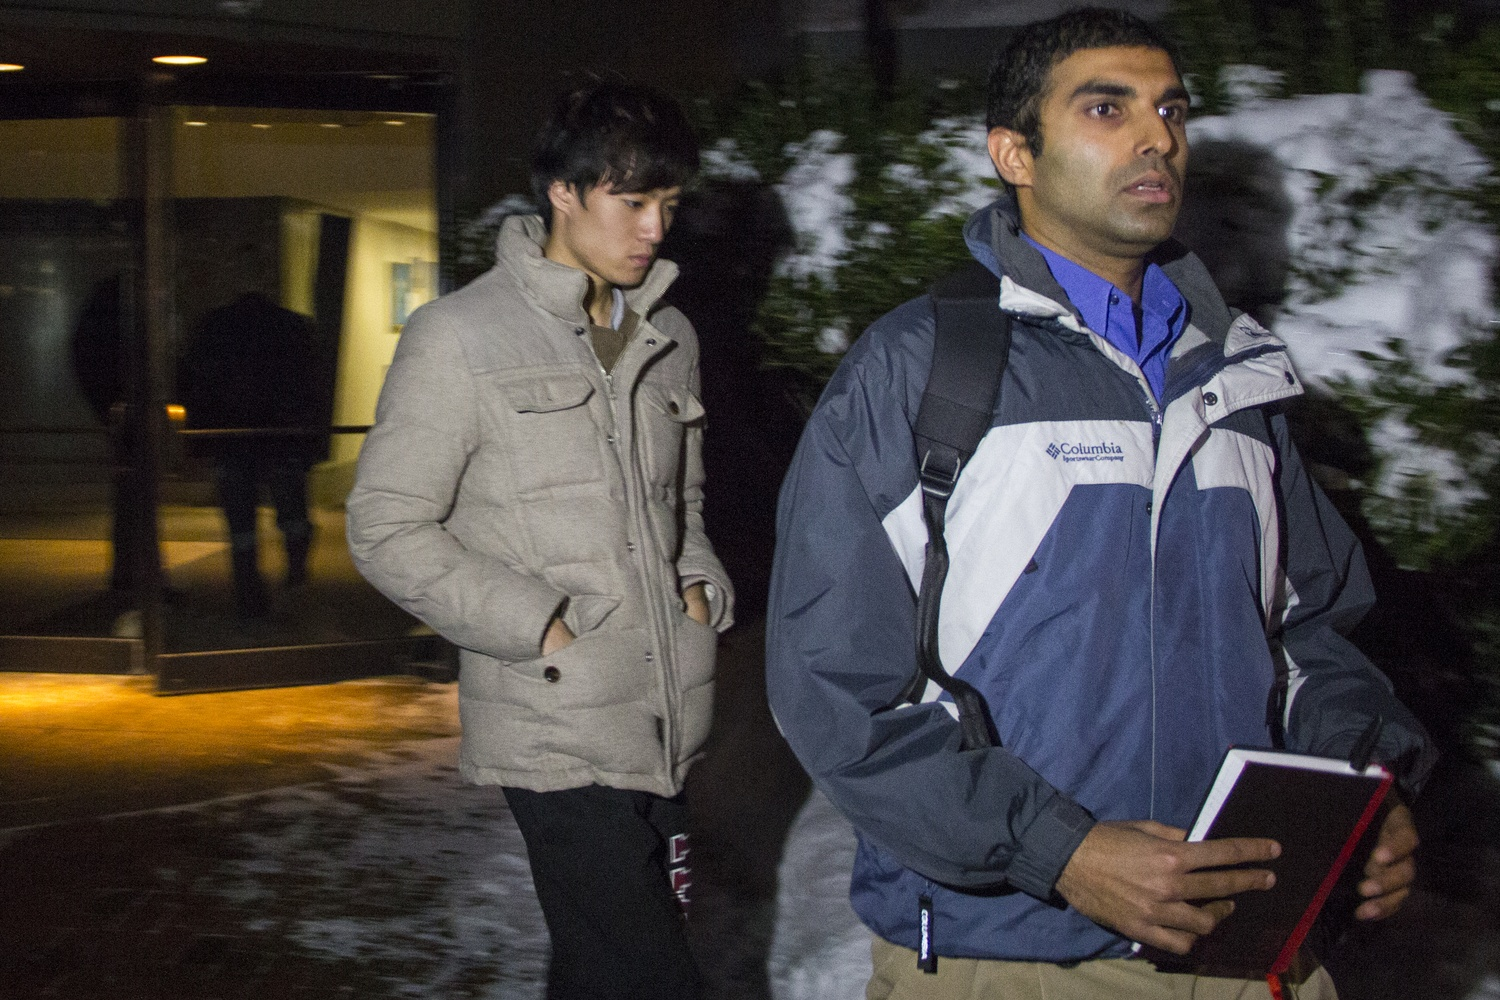 Eldo Kim, left, exits the federal courthouse in december after he has been released on bail awaiting further trial